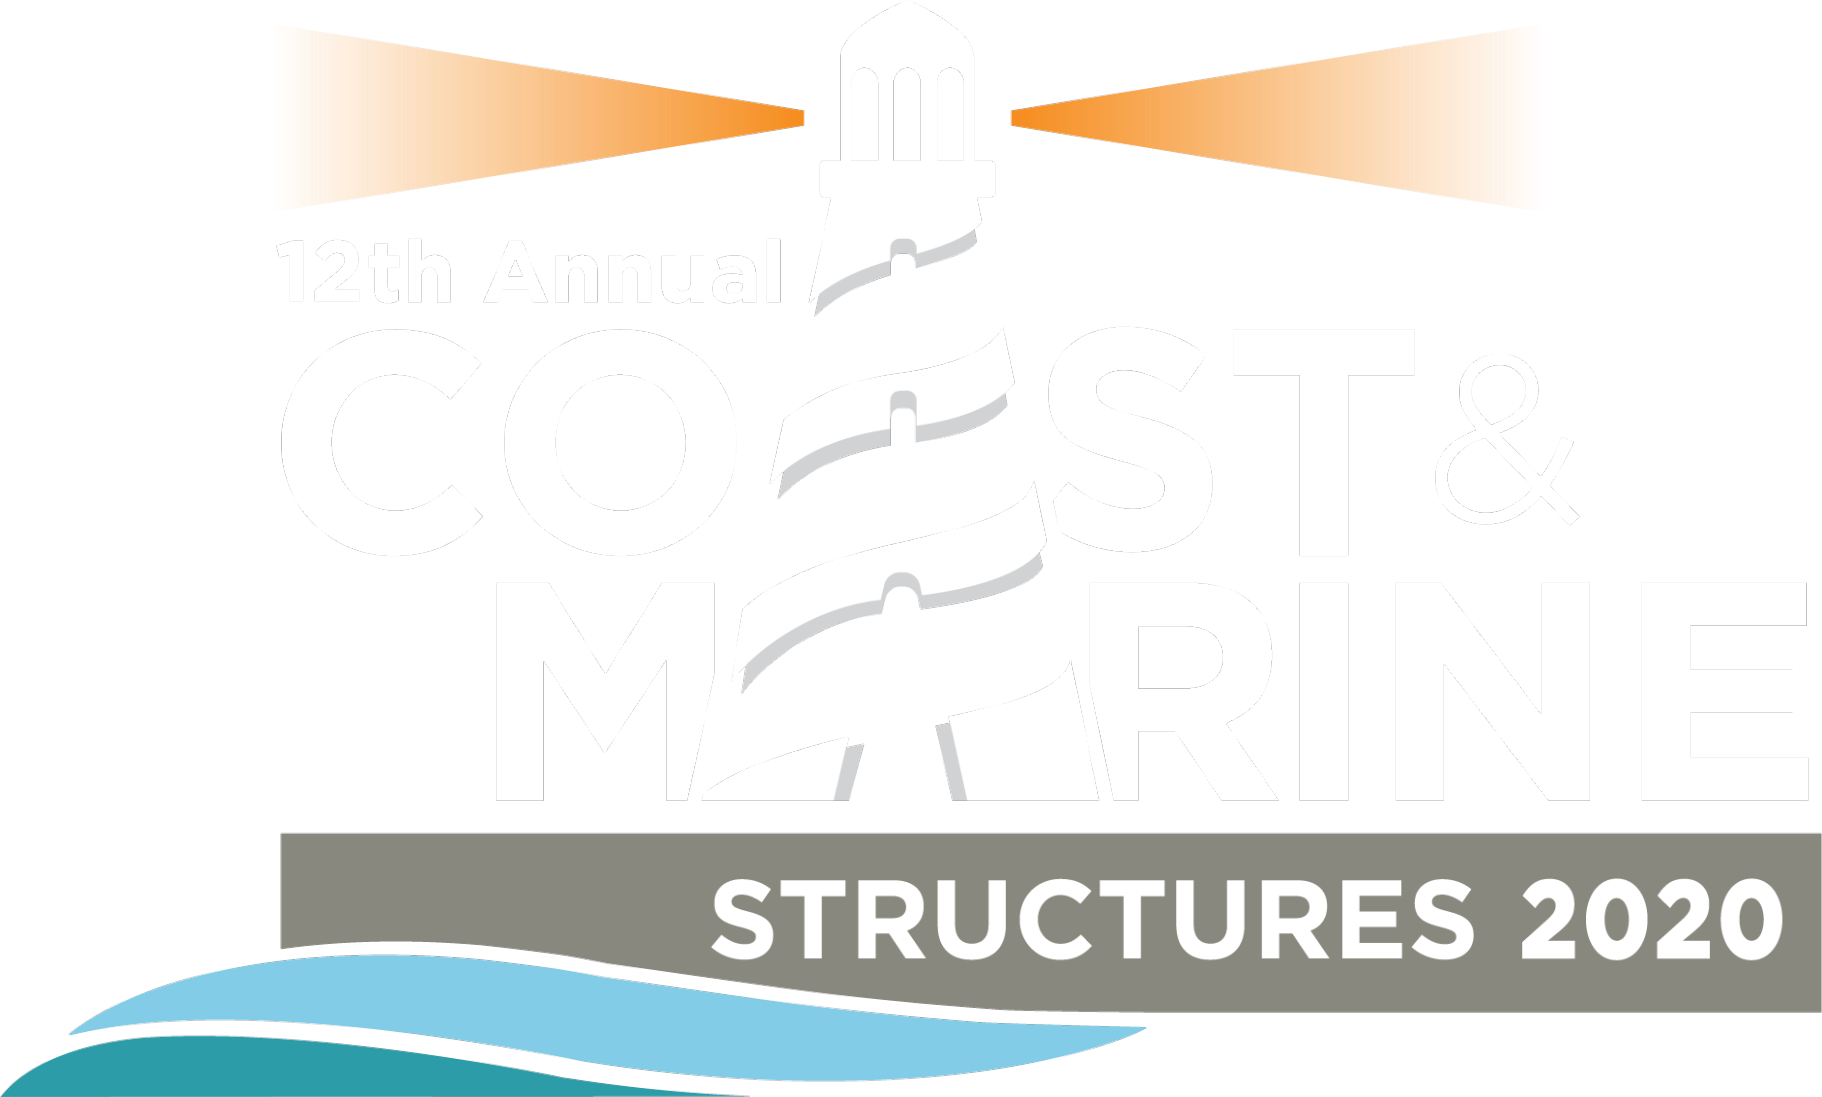 12th Annual Coast & Marine Summit 2020